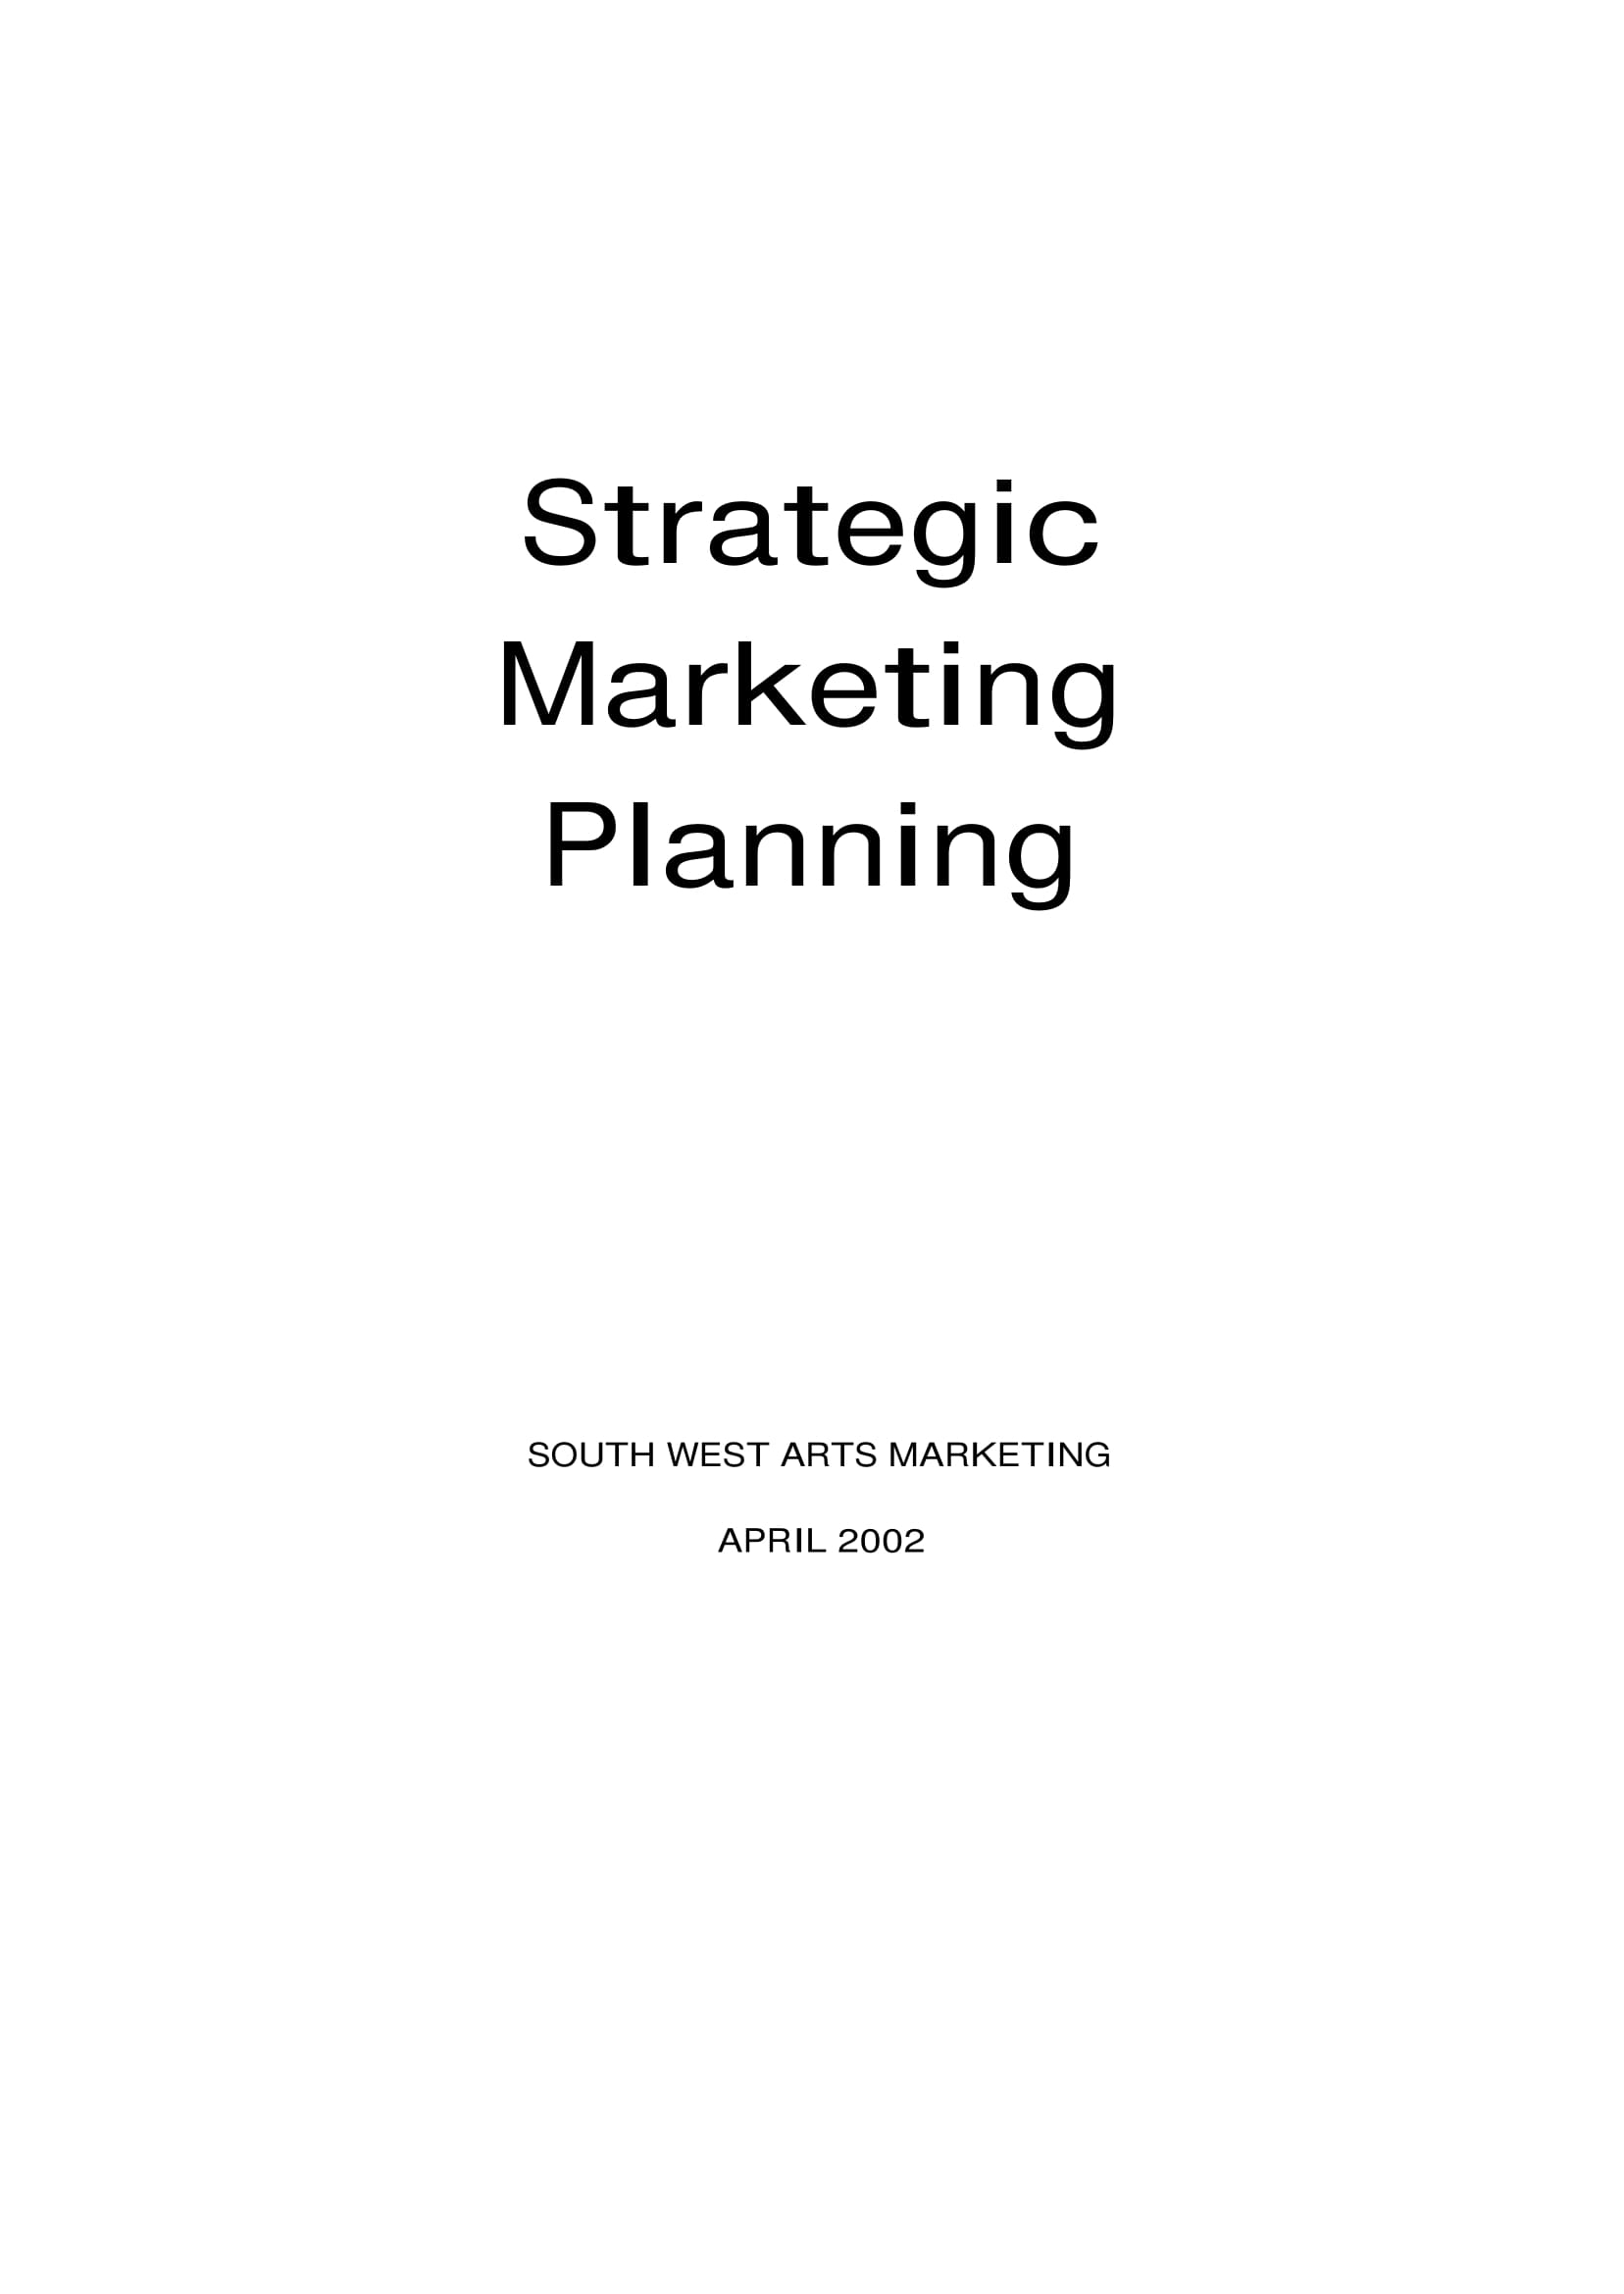 south west arts strategic marketing plan example